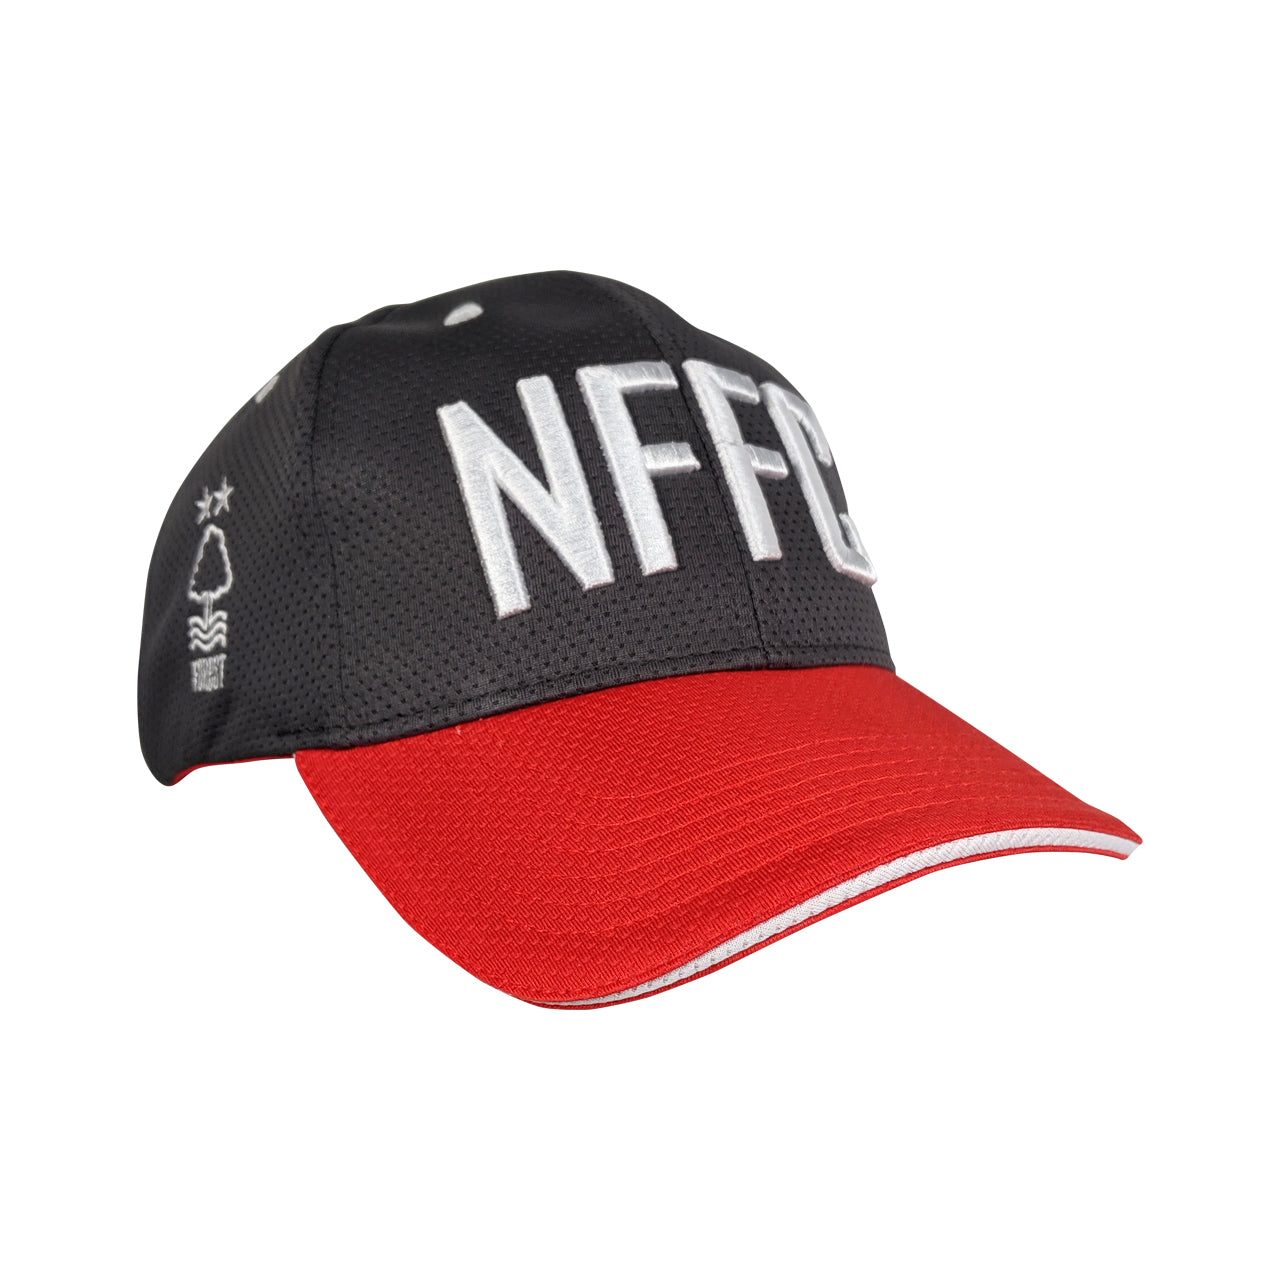 NFFC Junior Macron Baseball Cap